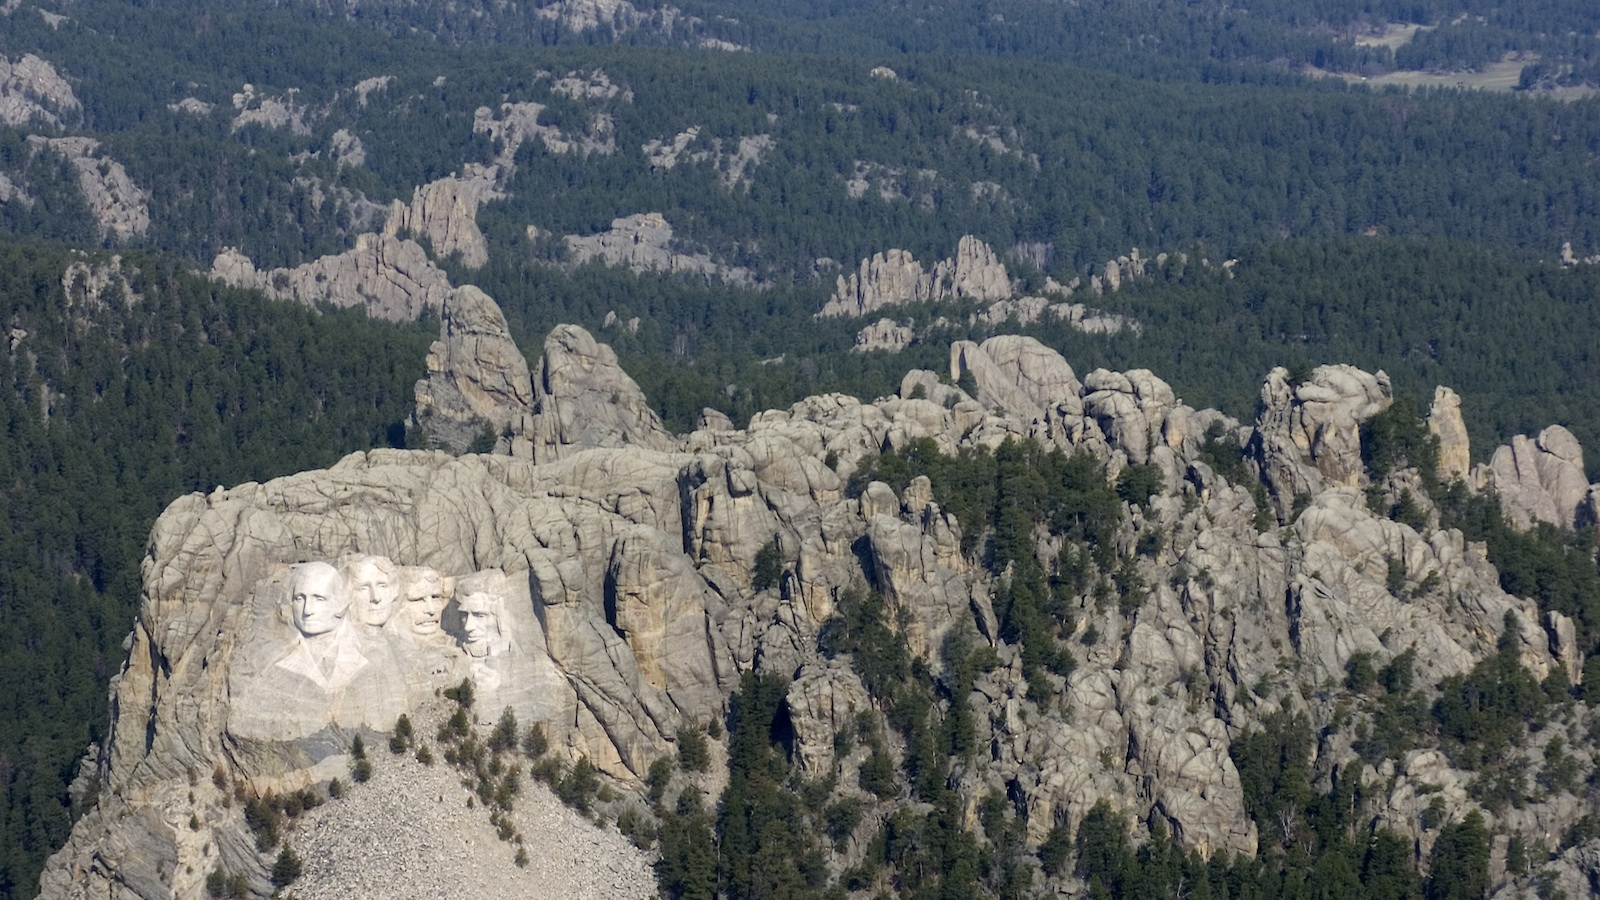 Mount Rushmore, Black Hills National Forest, South Dakota.